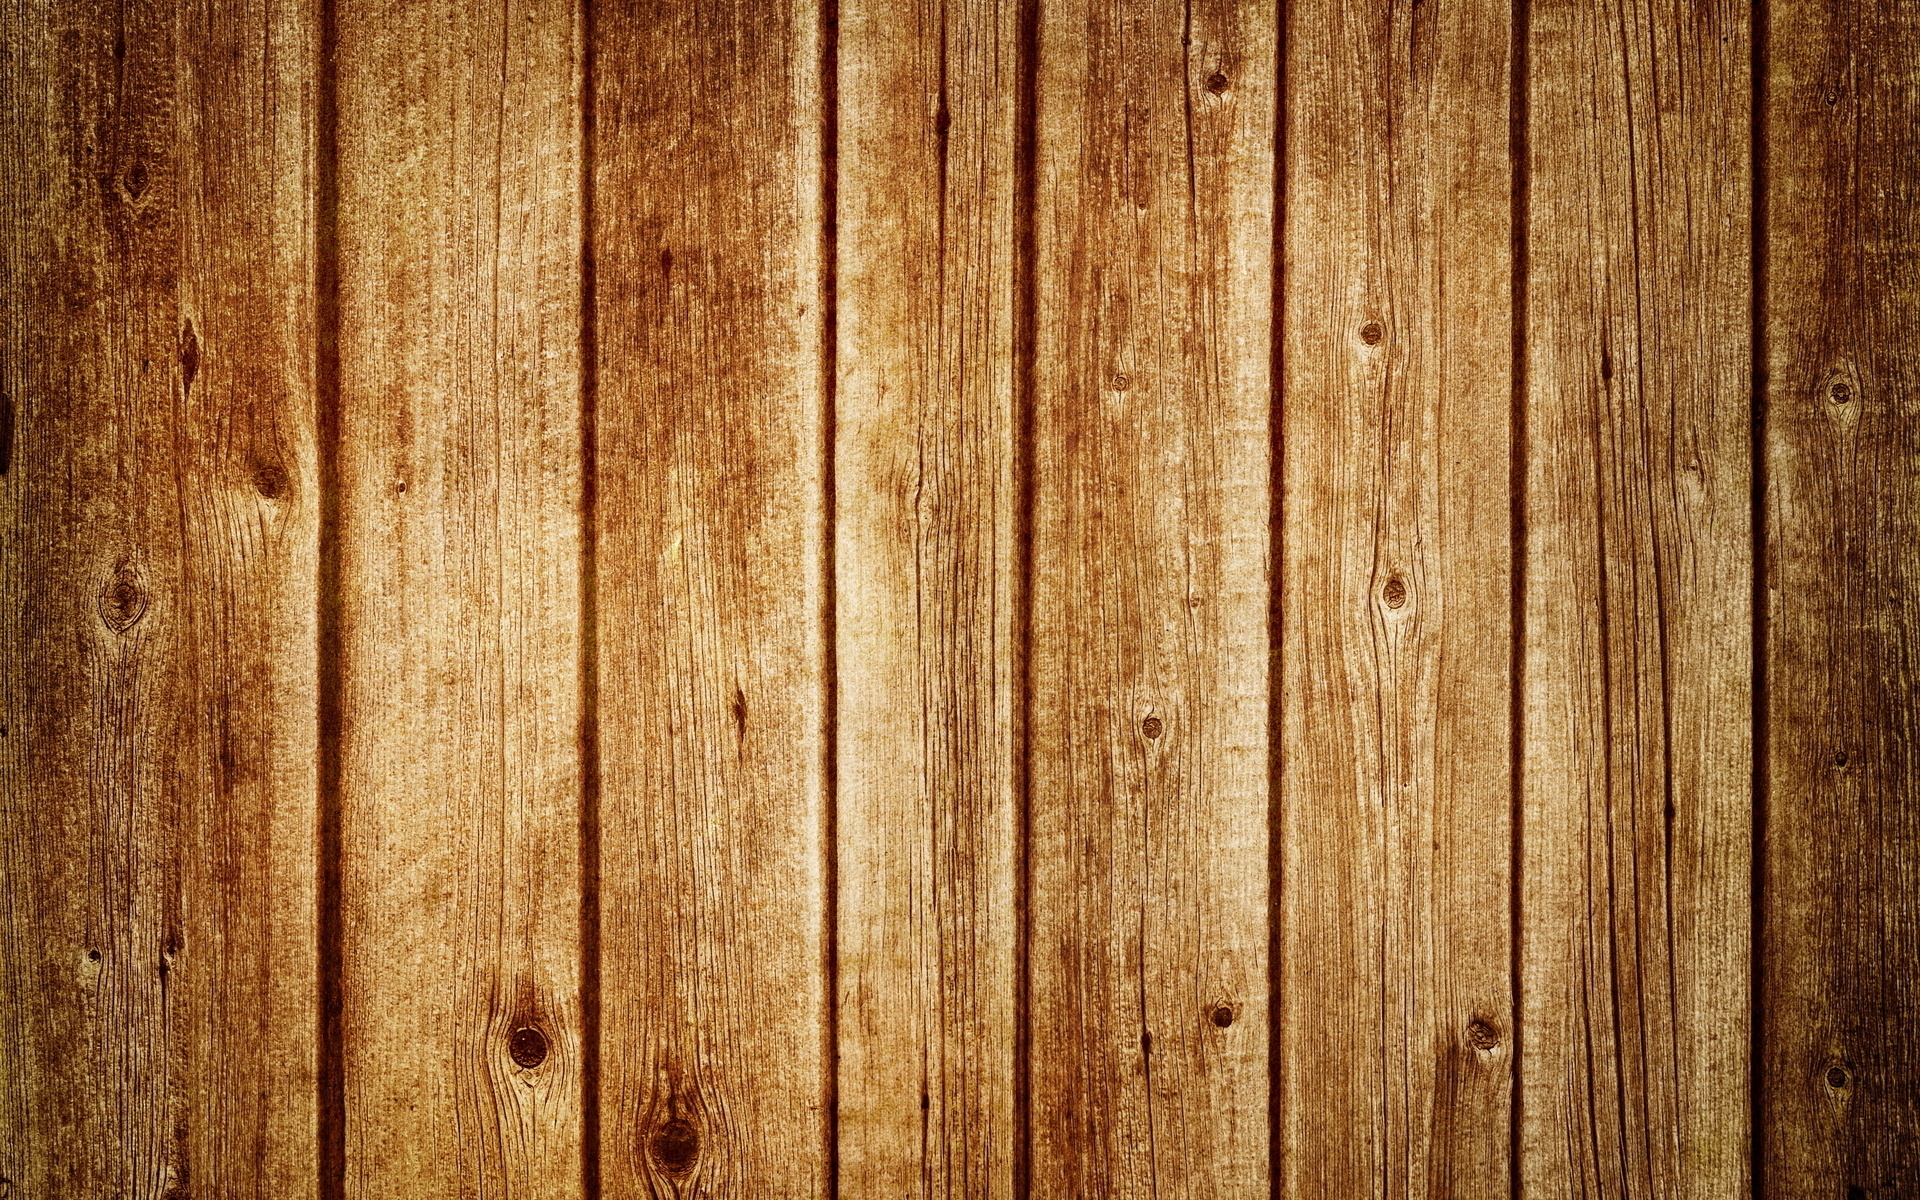 Wood Wallpaper 10111 1920x1200 Px